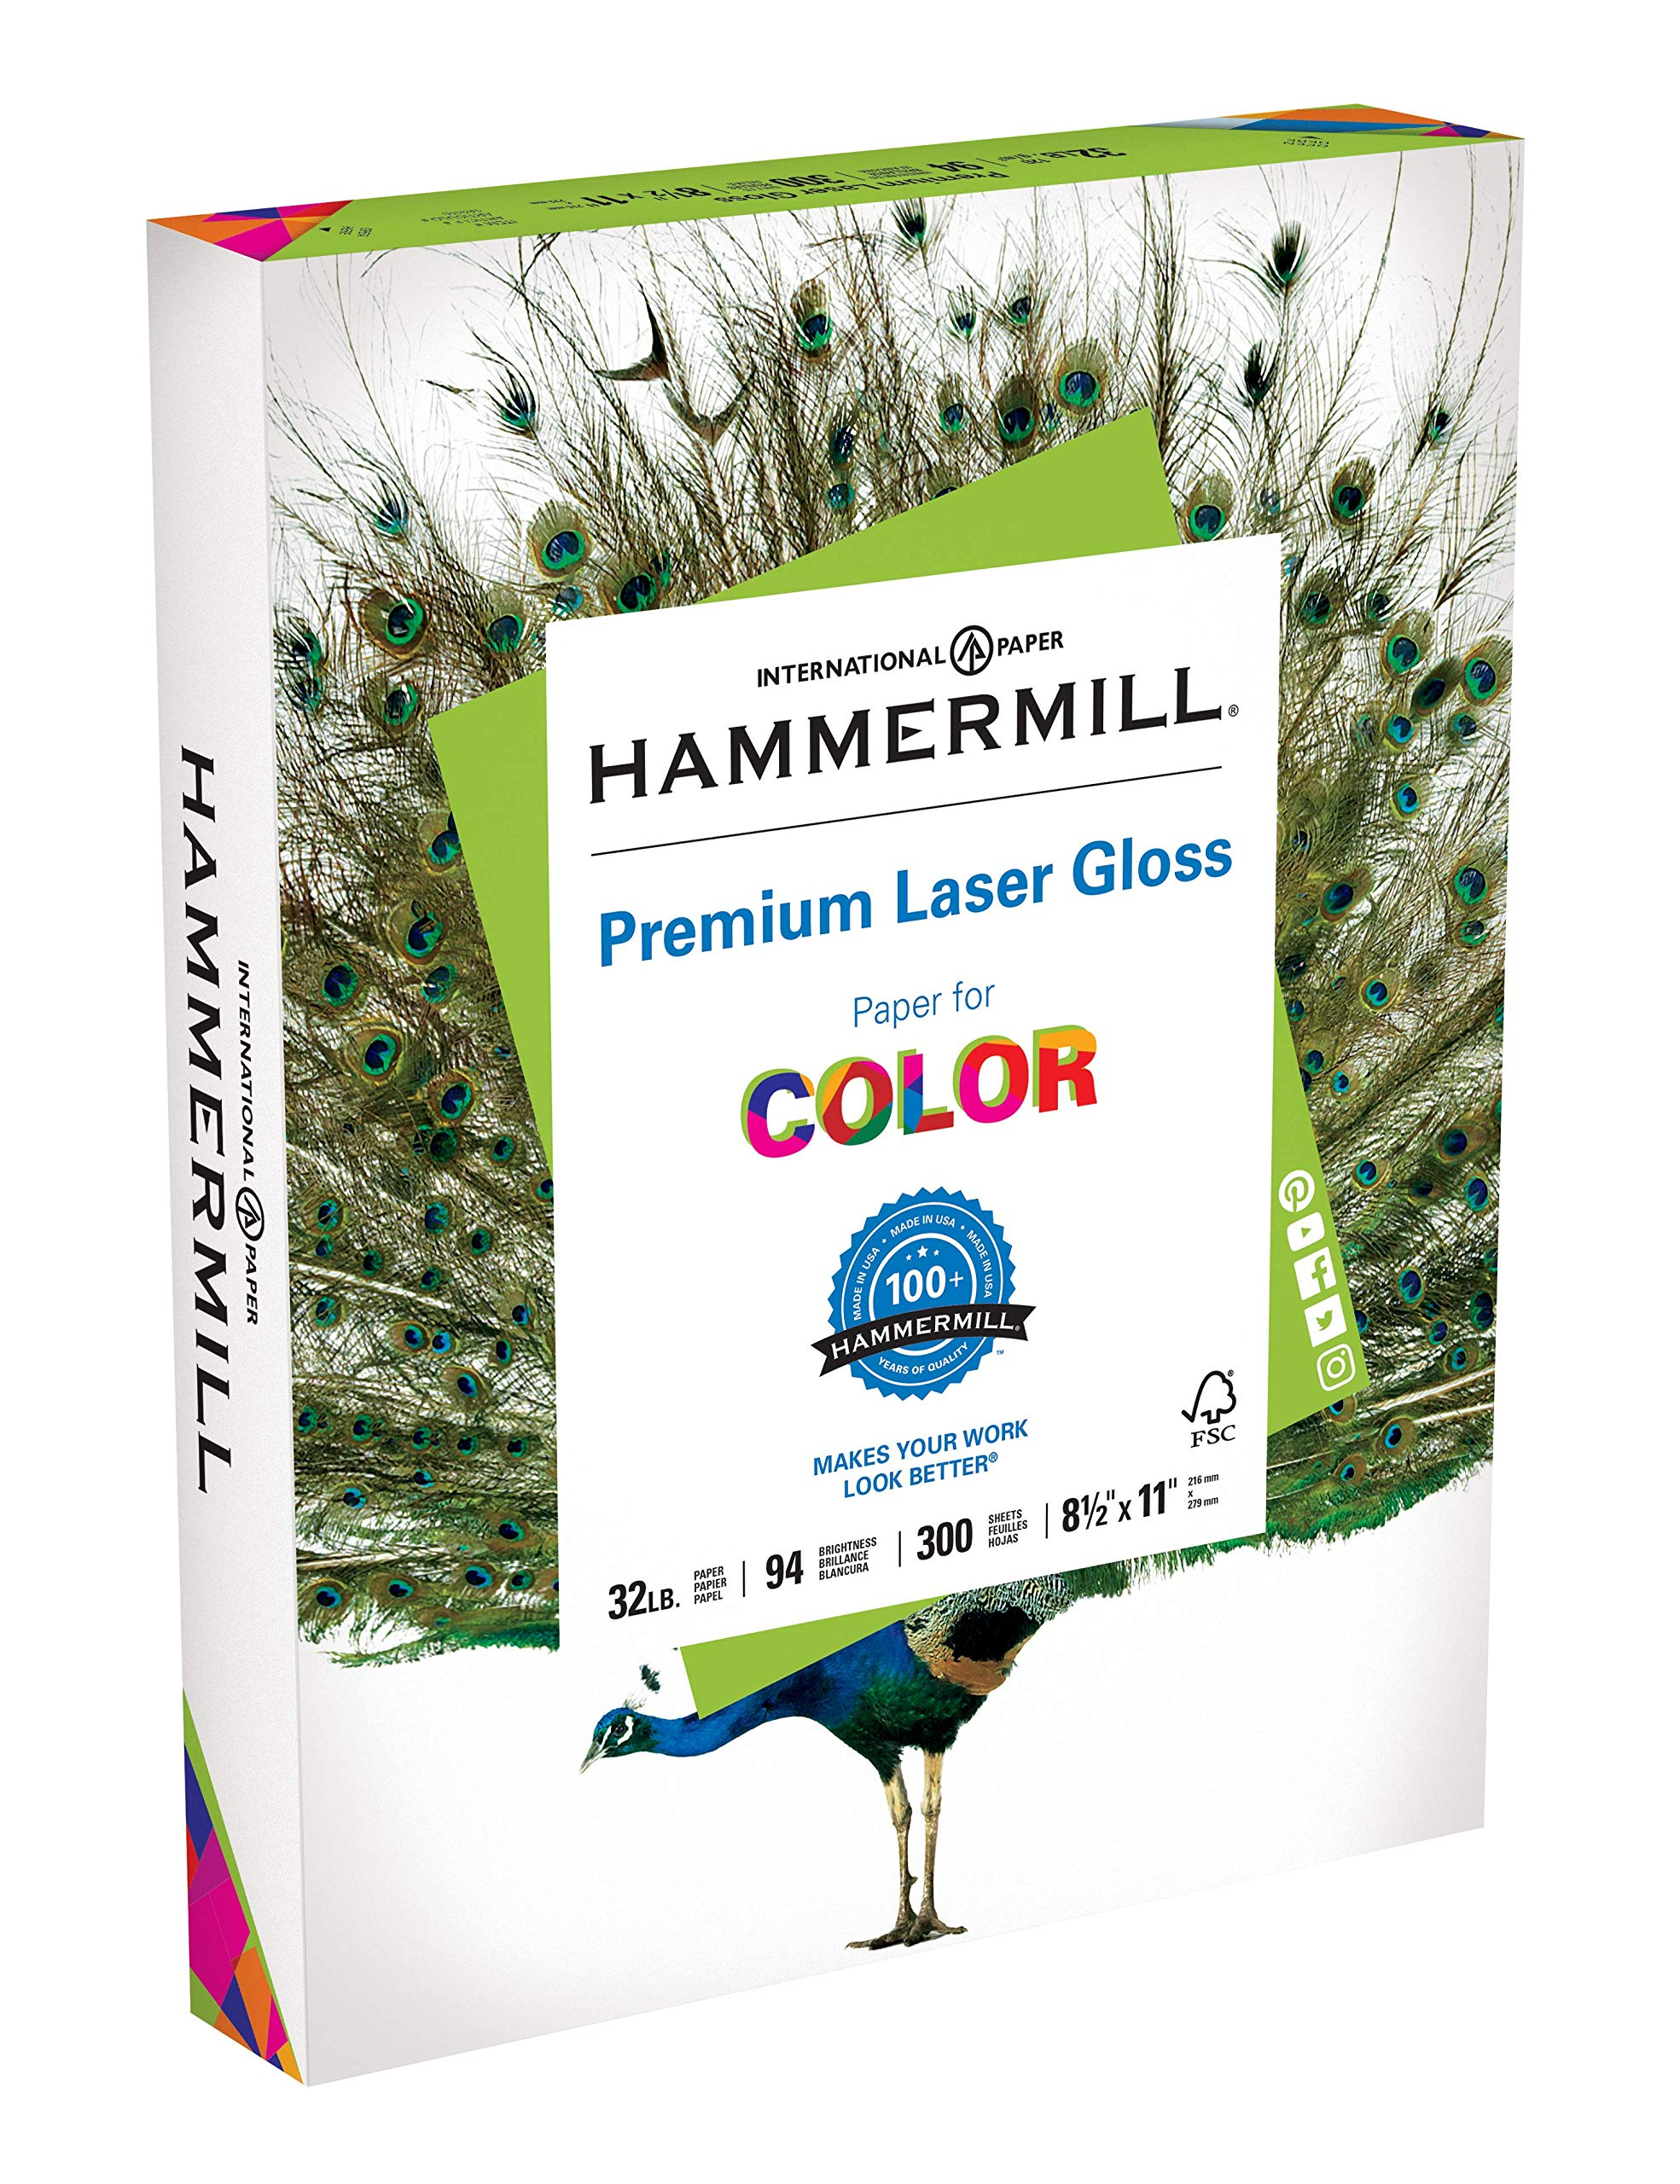 Hammermill Paper, Premium Laser Gloss Paper, 8.5 x 11 Paper, Letter Paper, 32lb Paper, 94 Bright, 1 Pack / 300 Sheets (163110R) Acid Free Paper by Hammermill (Image #1)